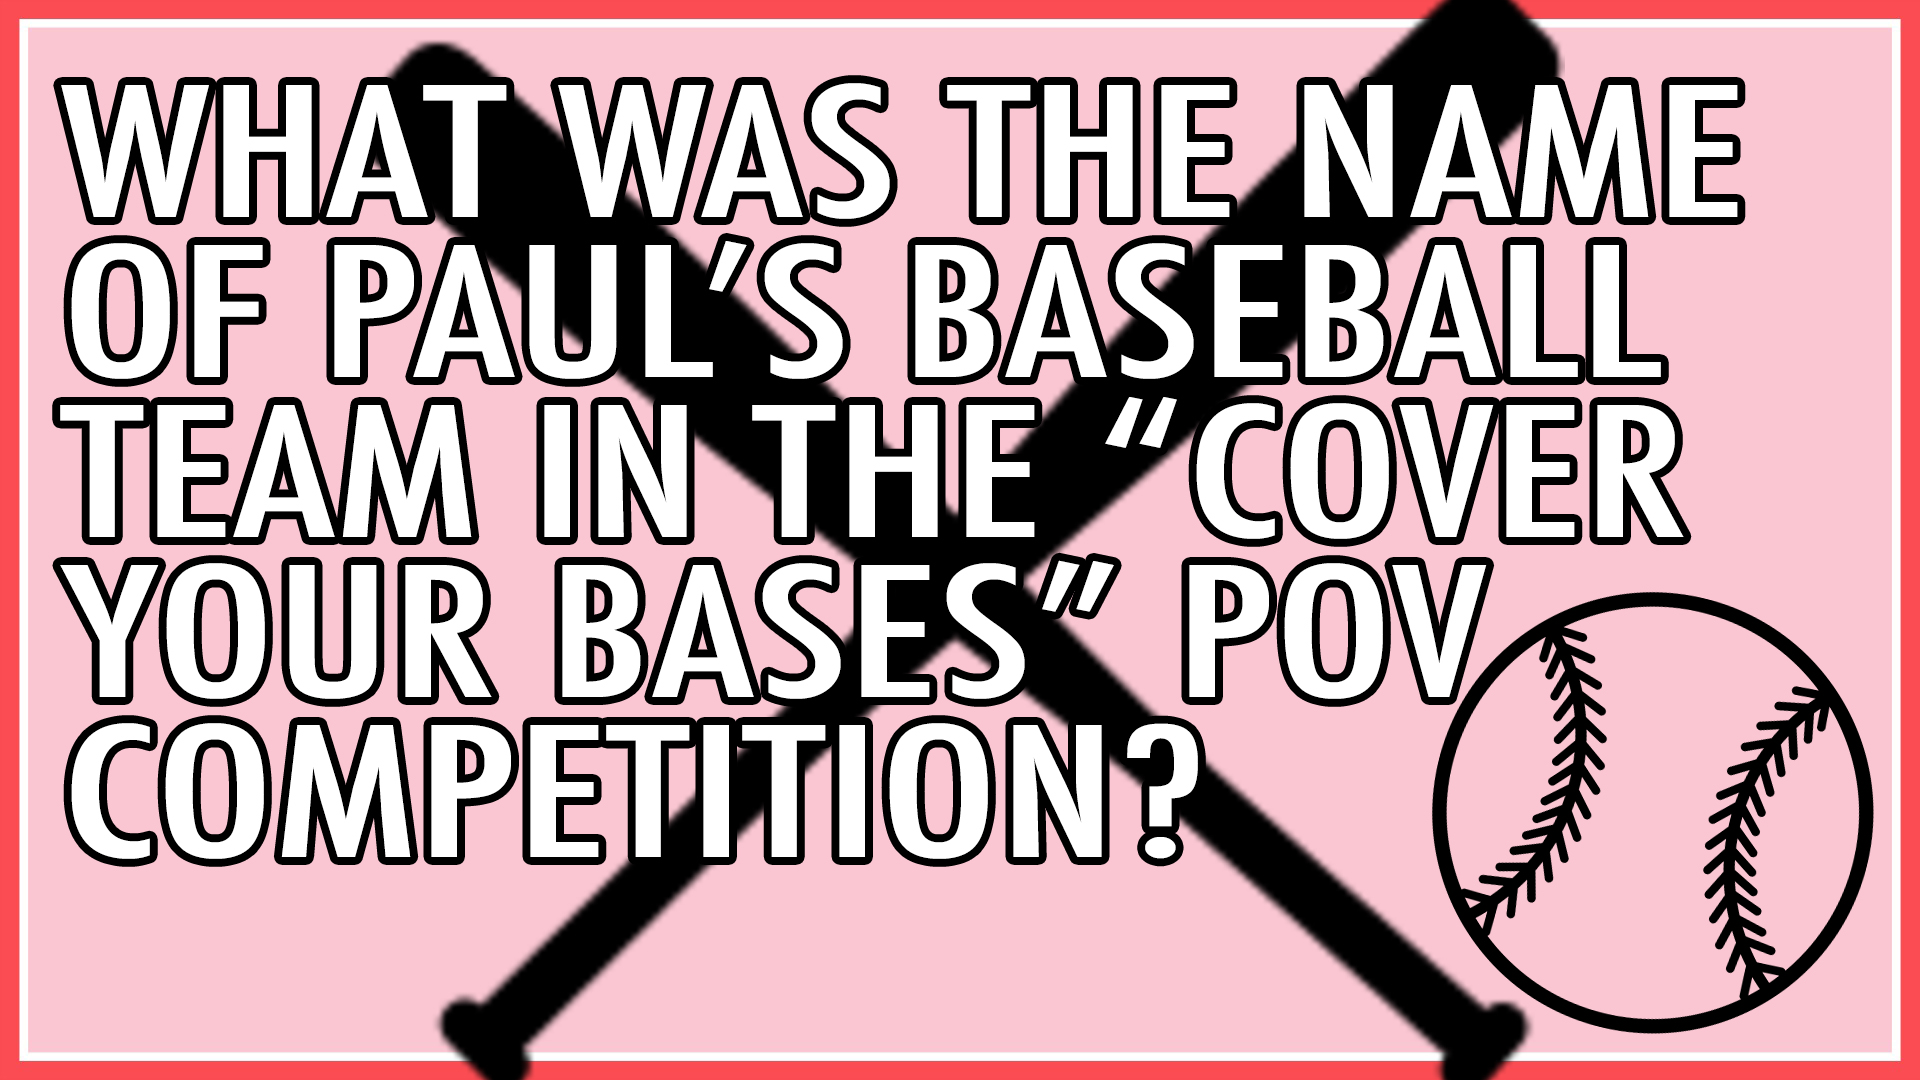 What was the name of Paul's baseball team in the